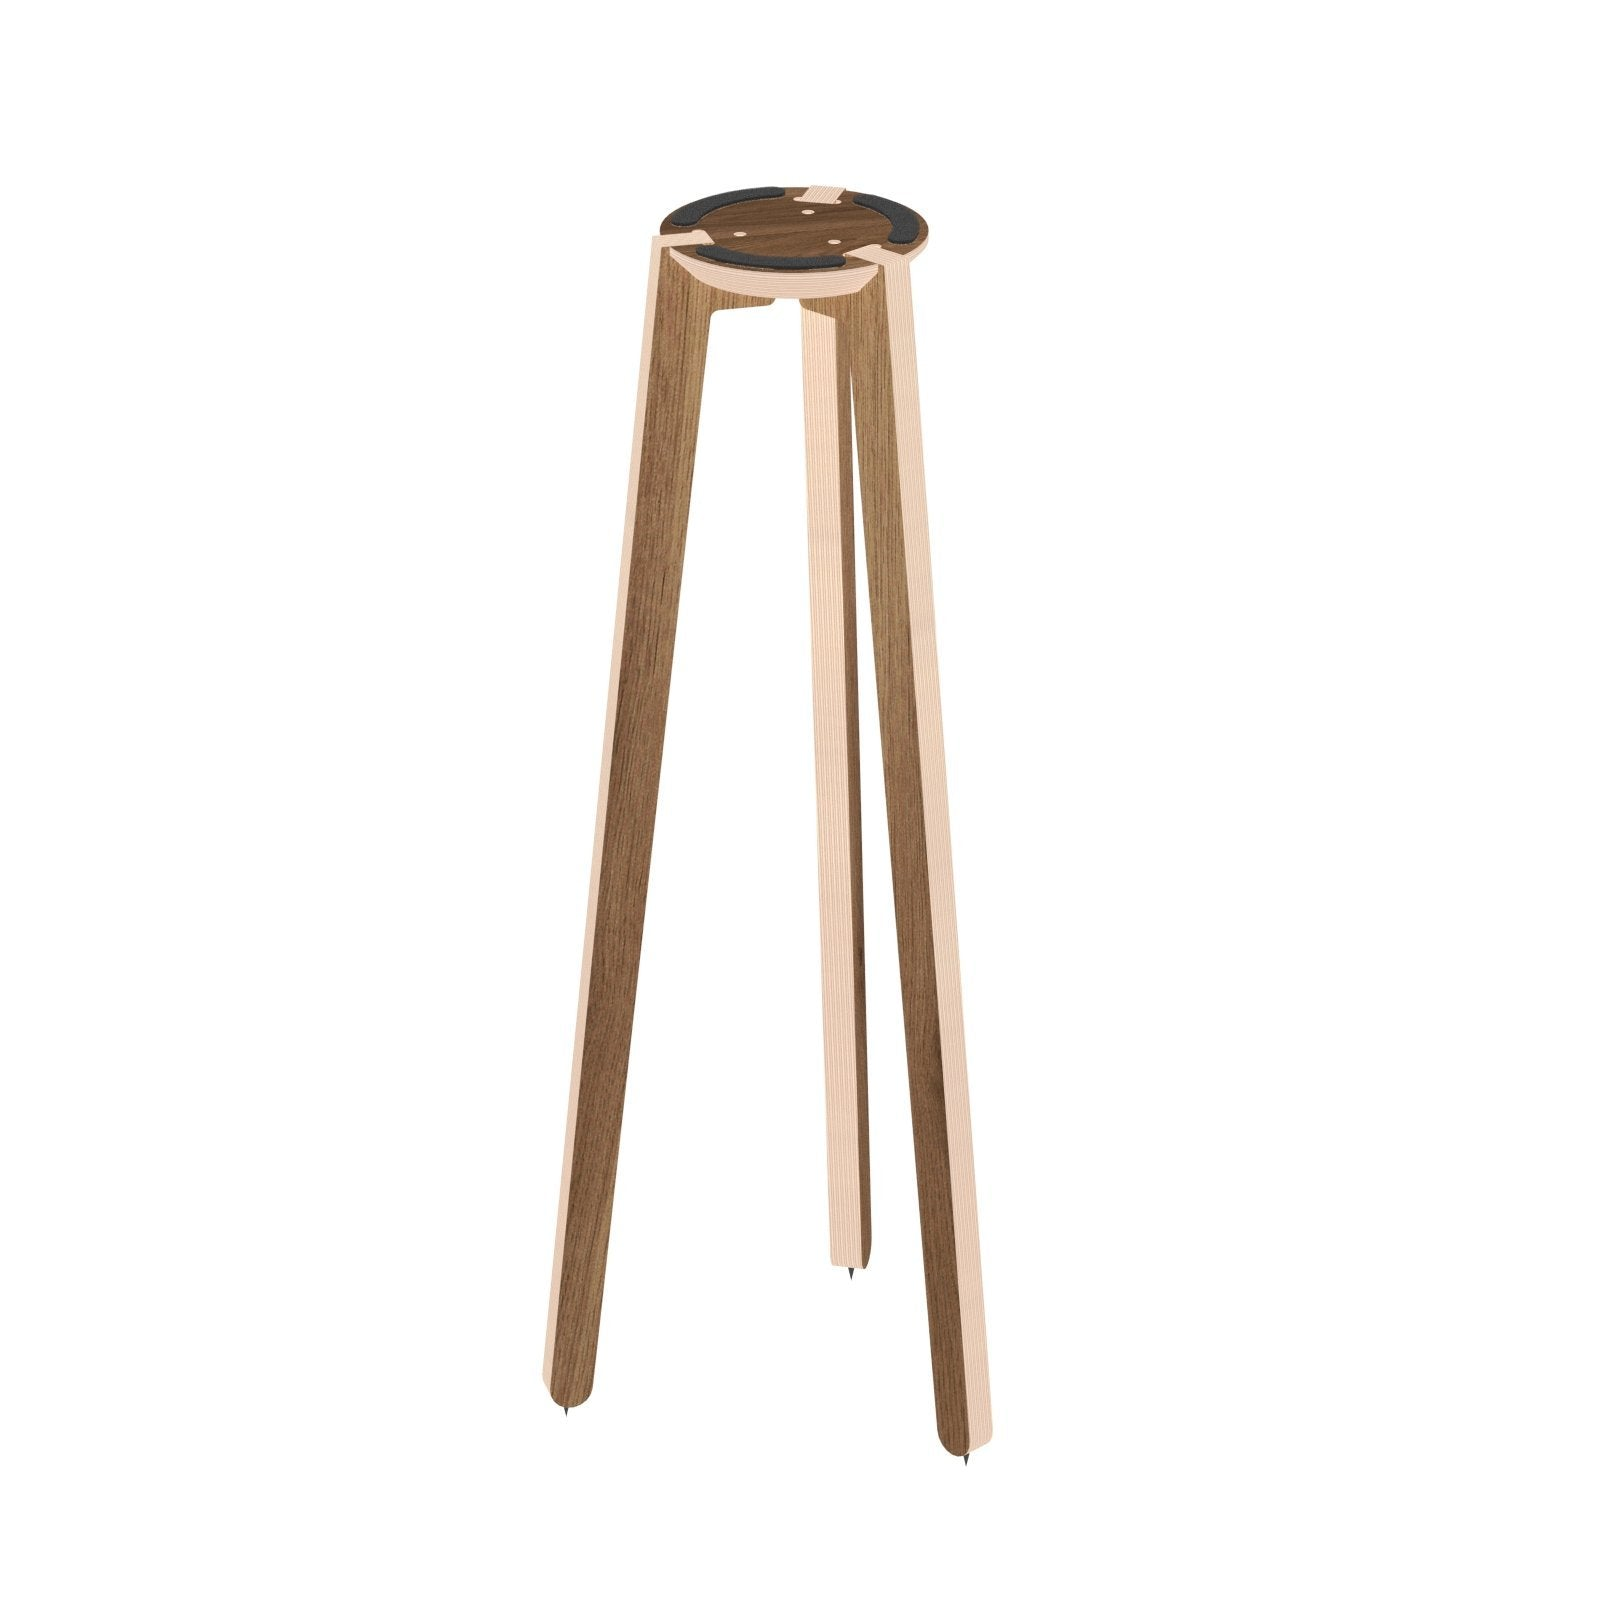 "HABIB/CO - Tripod Speaker Stand (walnut) - 36"" height - 7.5"" base - Carpet Spikes : Yes"